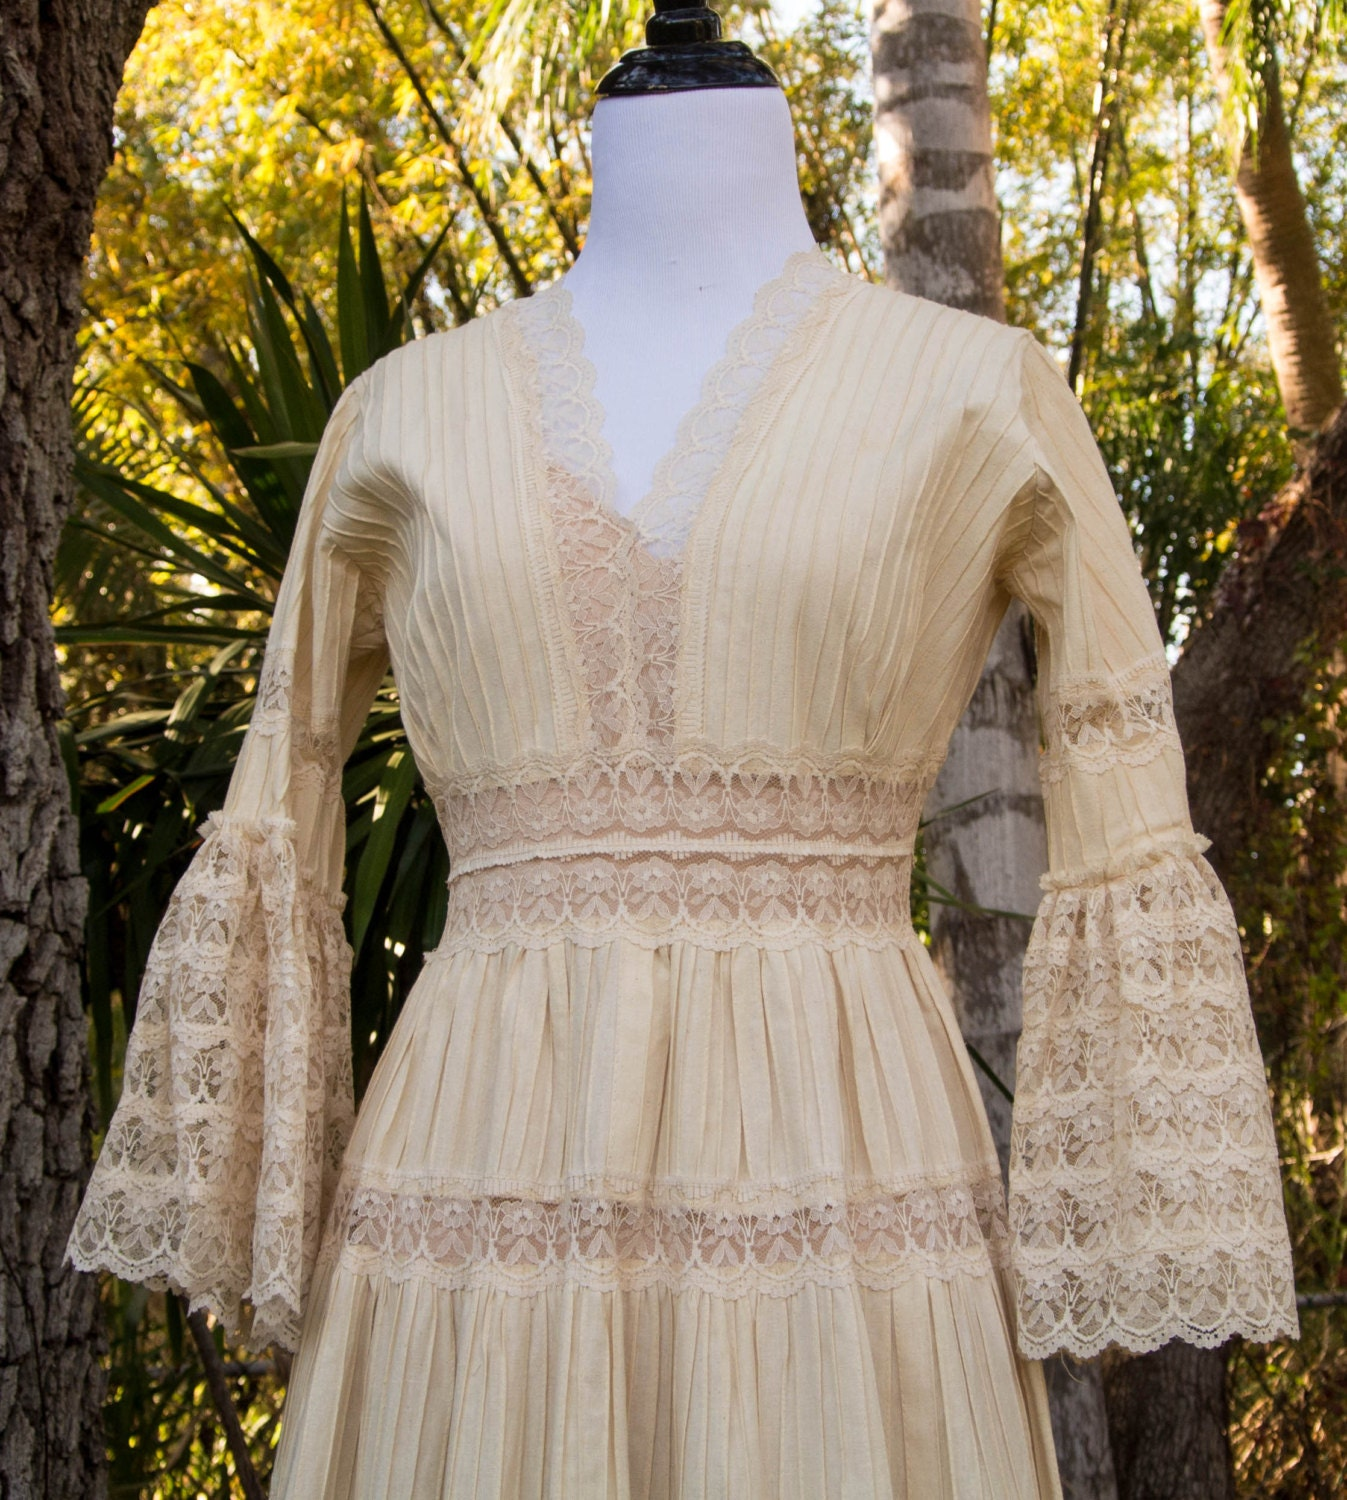 Vintage Wedding Dress/mexican Wedding Dress/bohemian